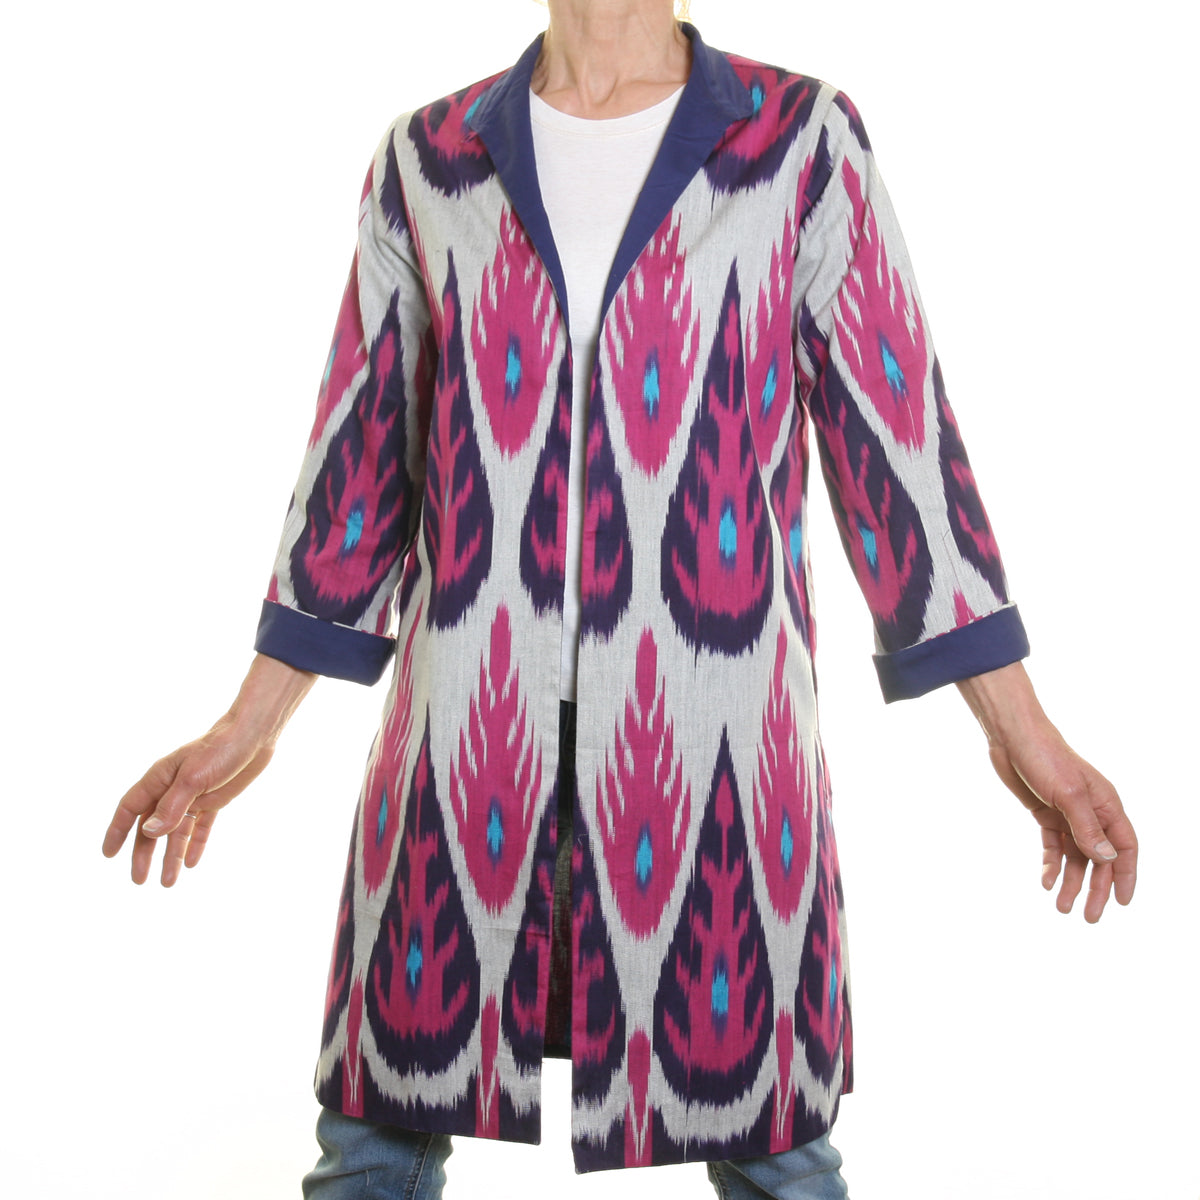 Ikat Silk and Cotton Jacket - Pink, Turquoise and Purple.